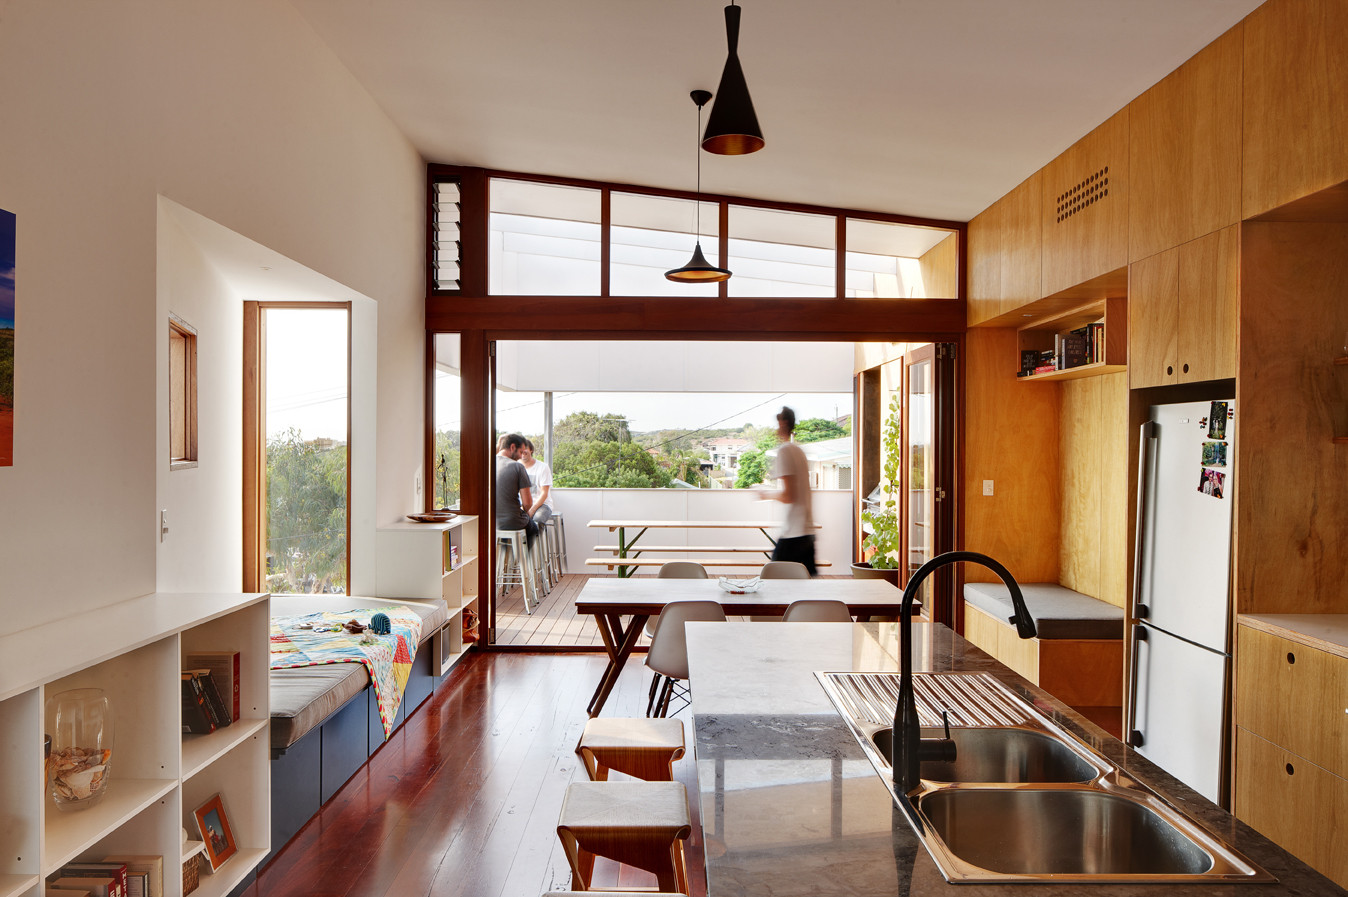 A Suburban Beach House, Architect: David Barr & Ross Brewin